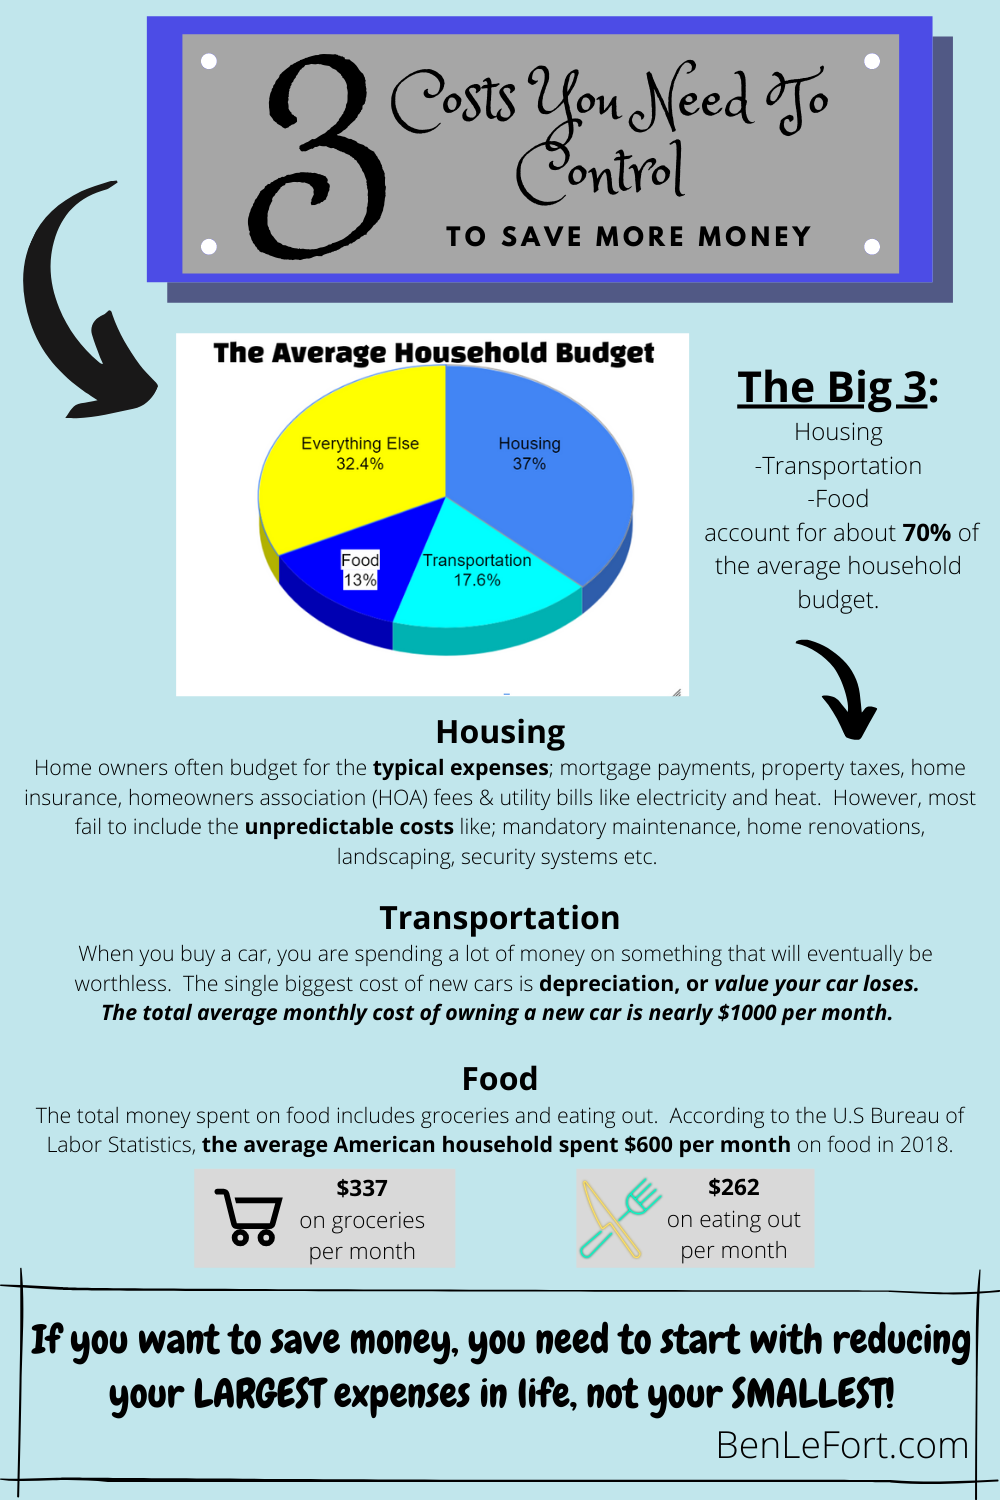 If you want to save more money you'll need to focus on the big 3 expenses; housing, transportation and food.